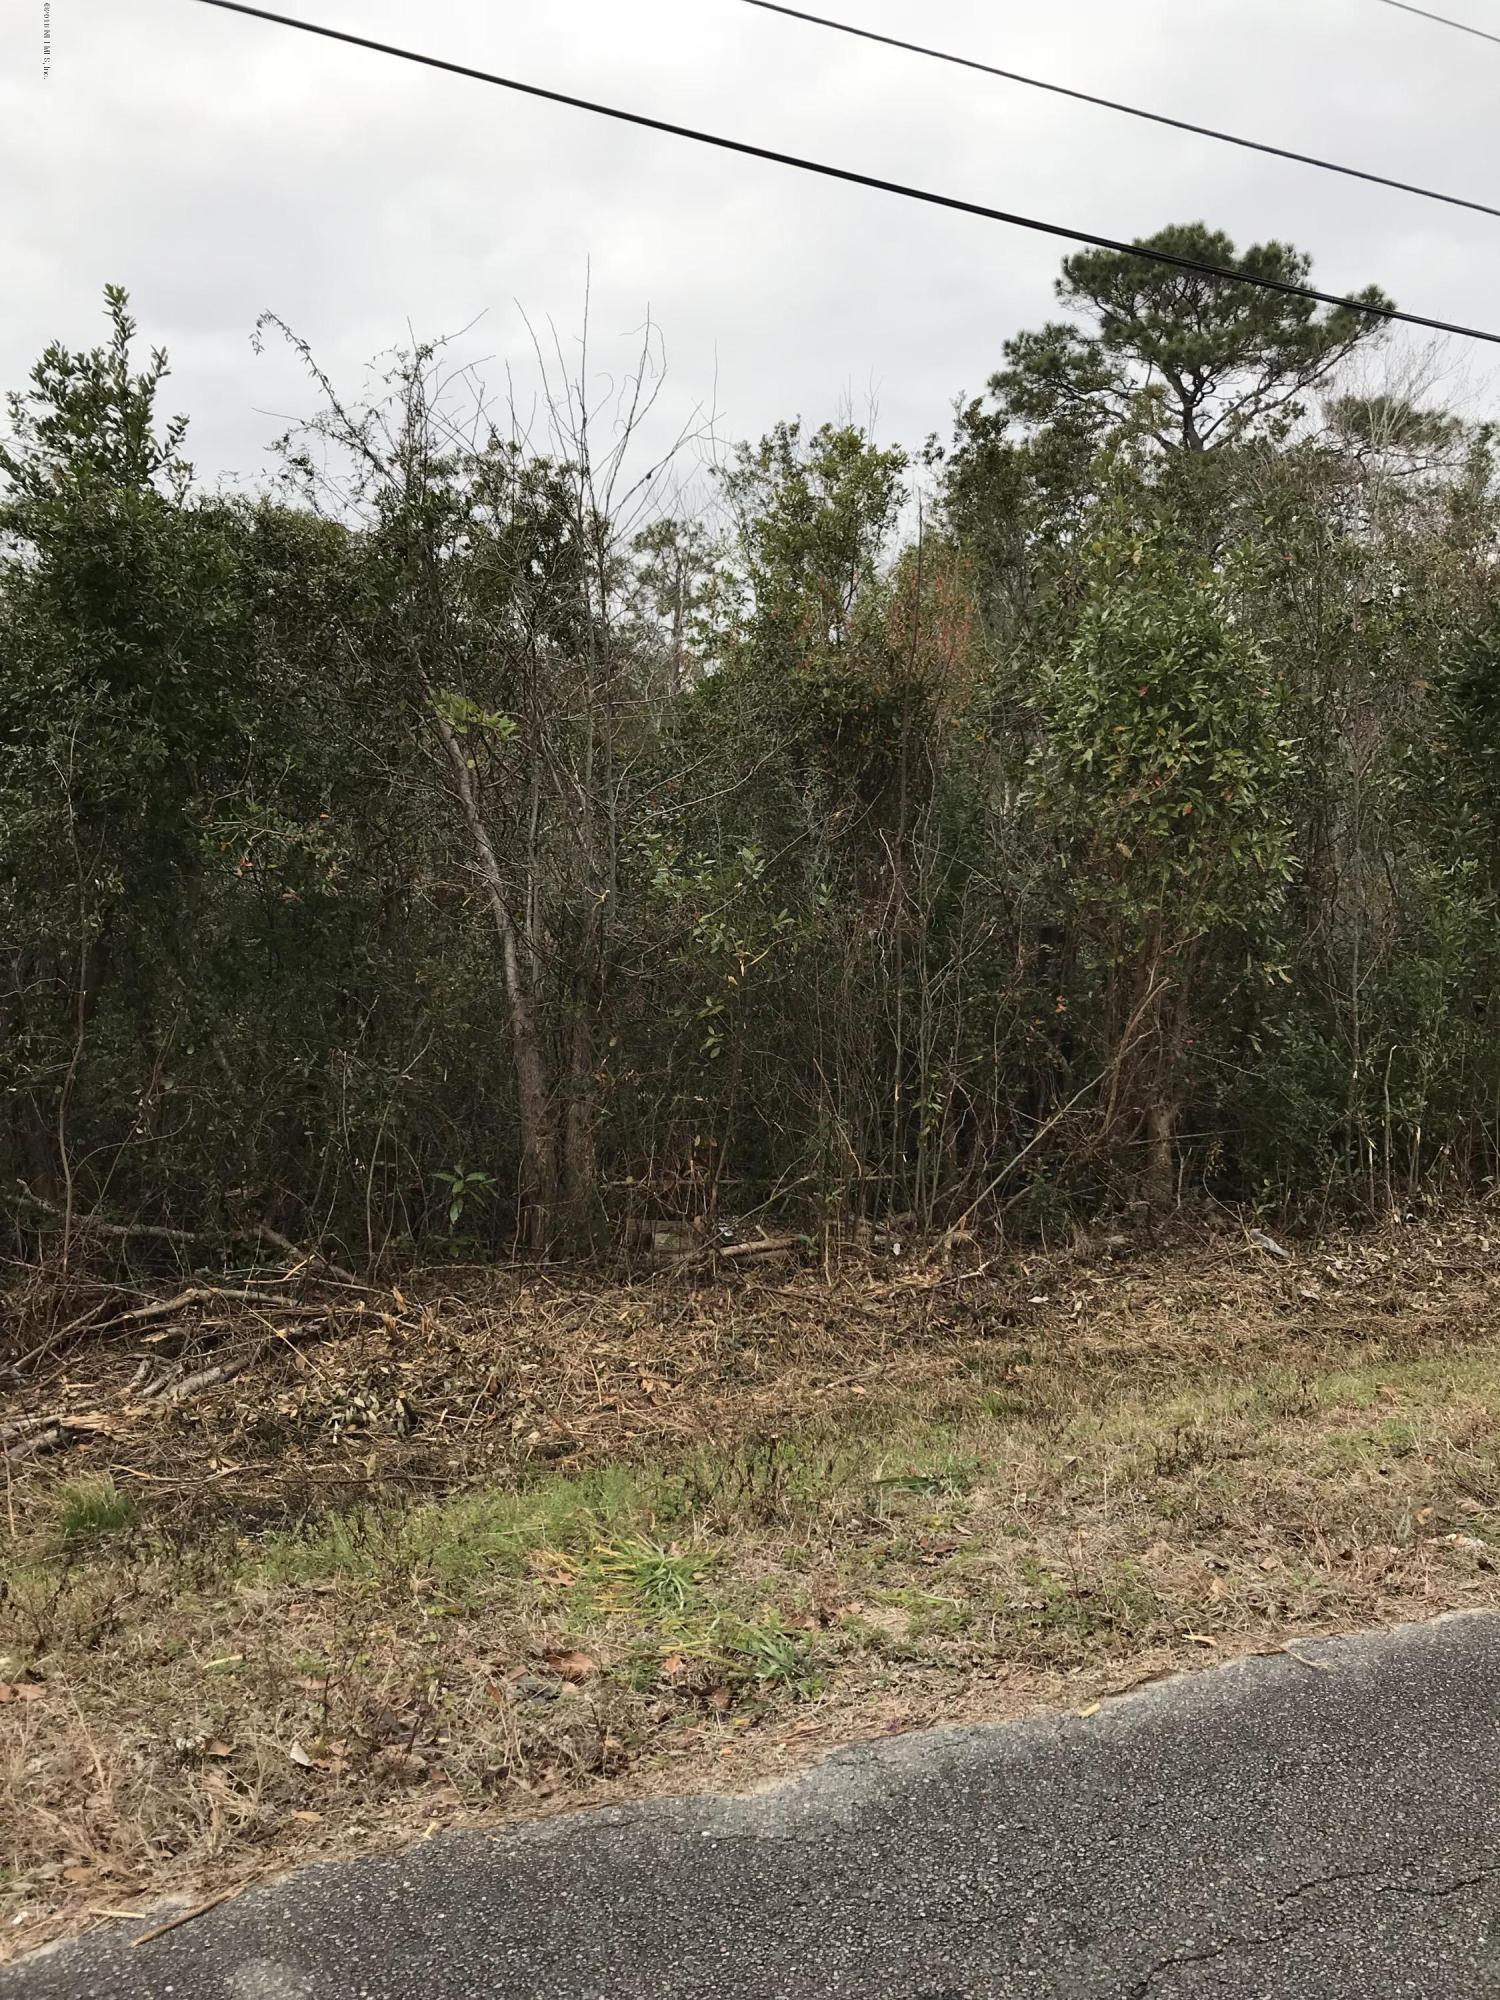 0 HAVEN, YULEE, FLORIDA 32097, ,Vacant land,For sale,HAVEN,920959